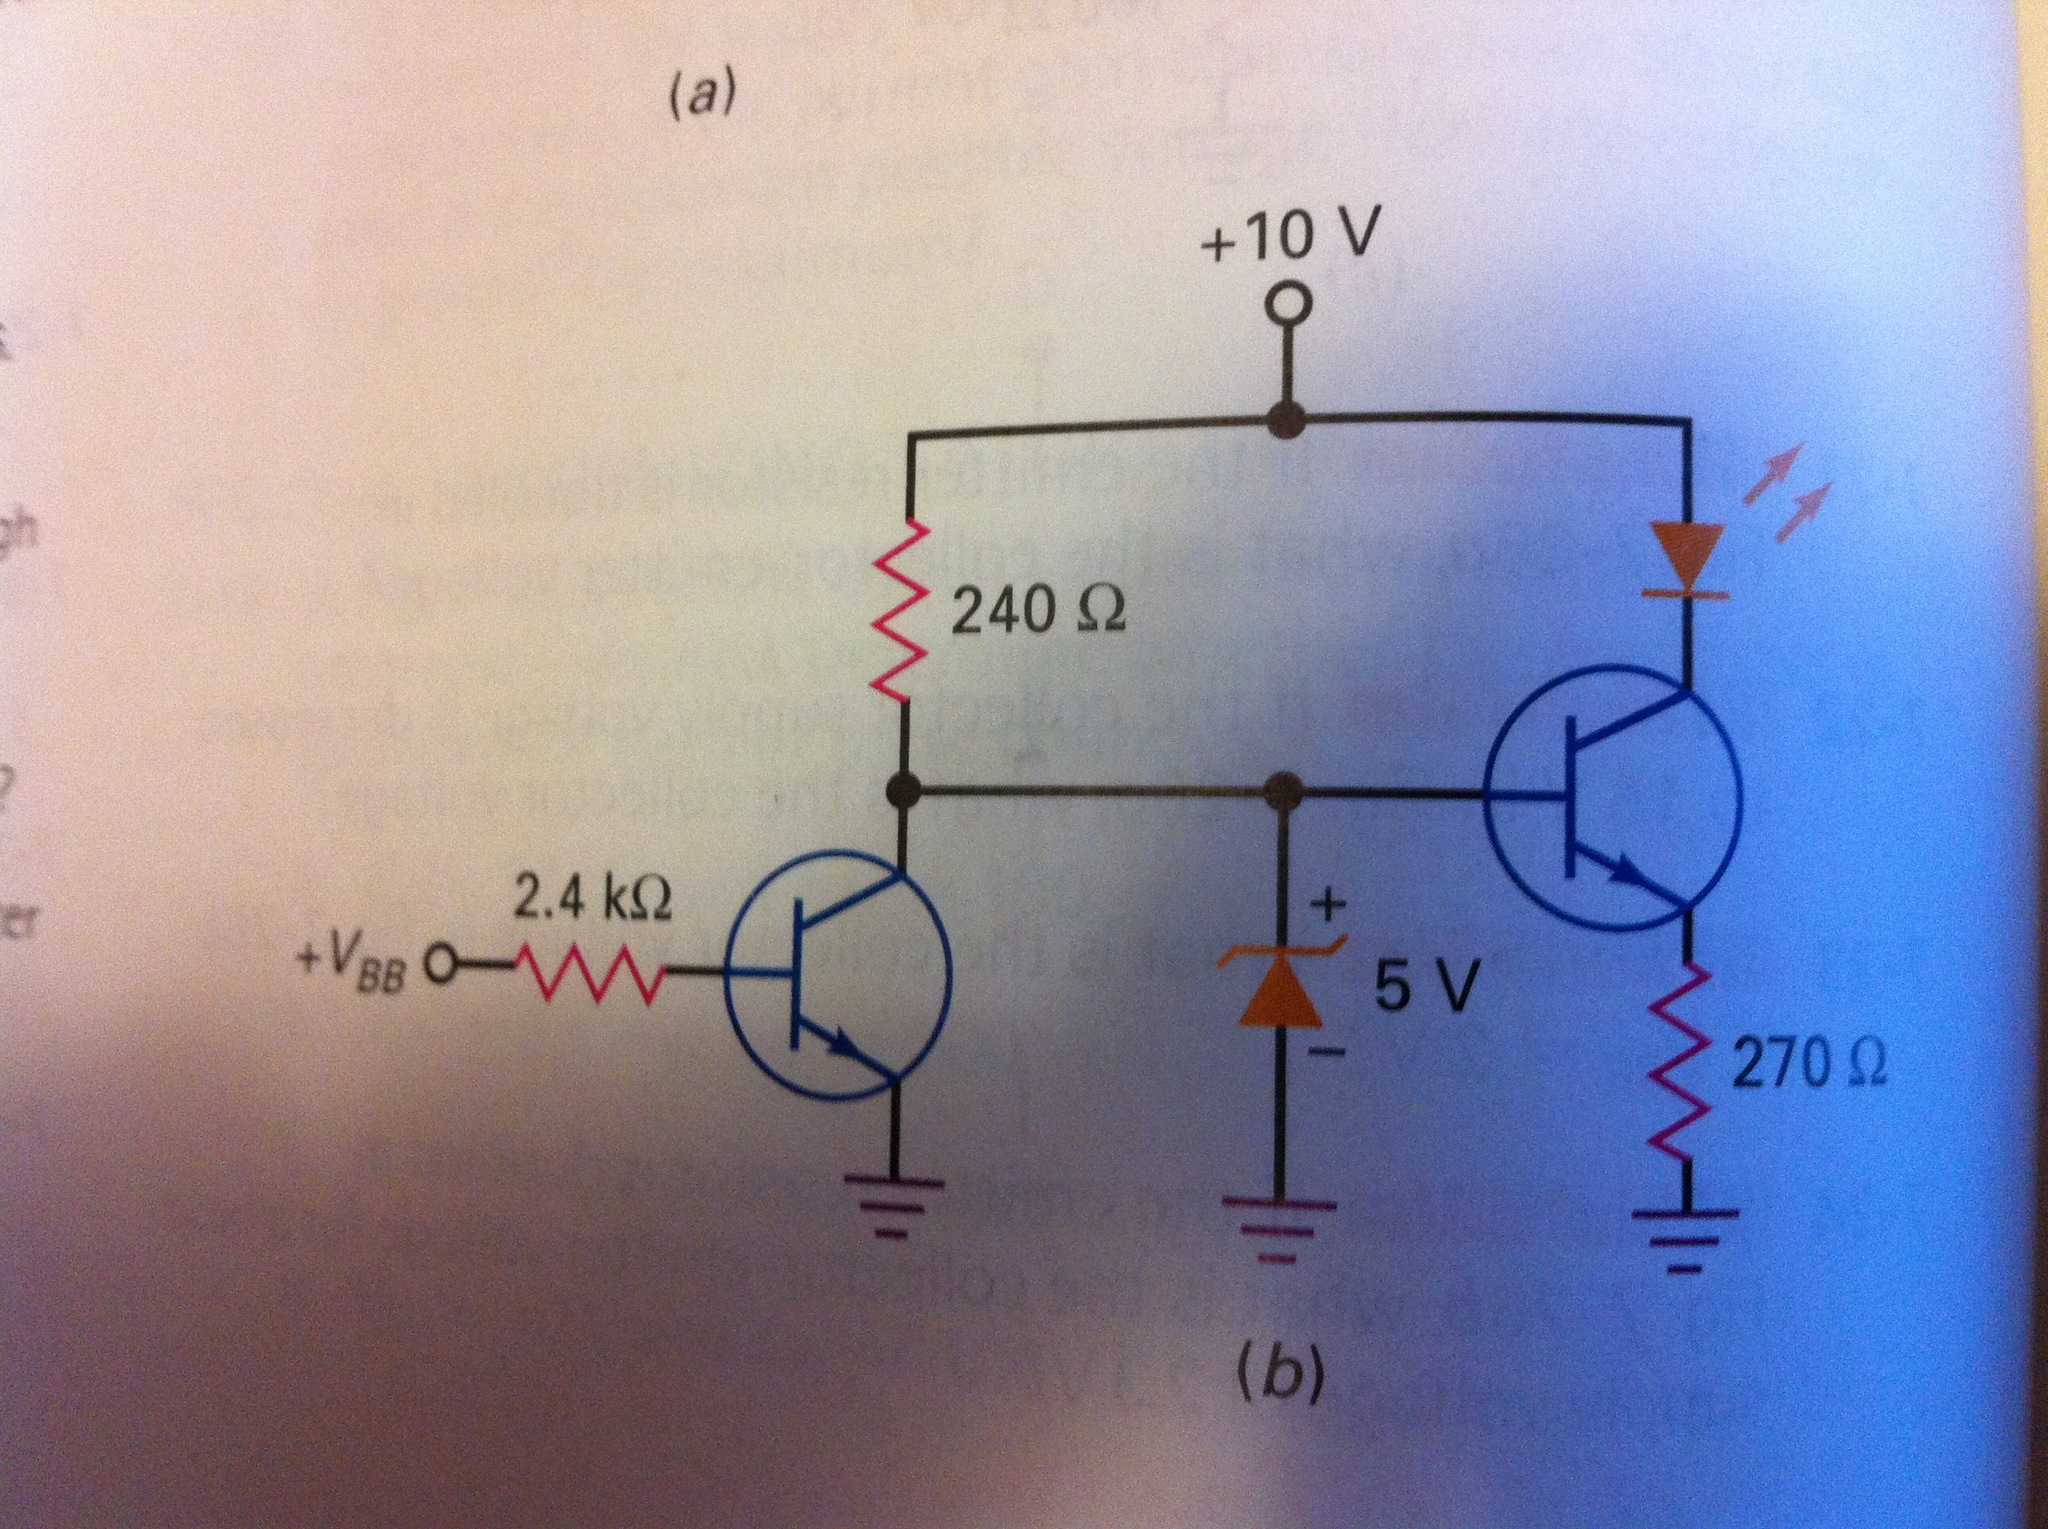 What is the current through the LED if Vbb = 0. if